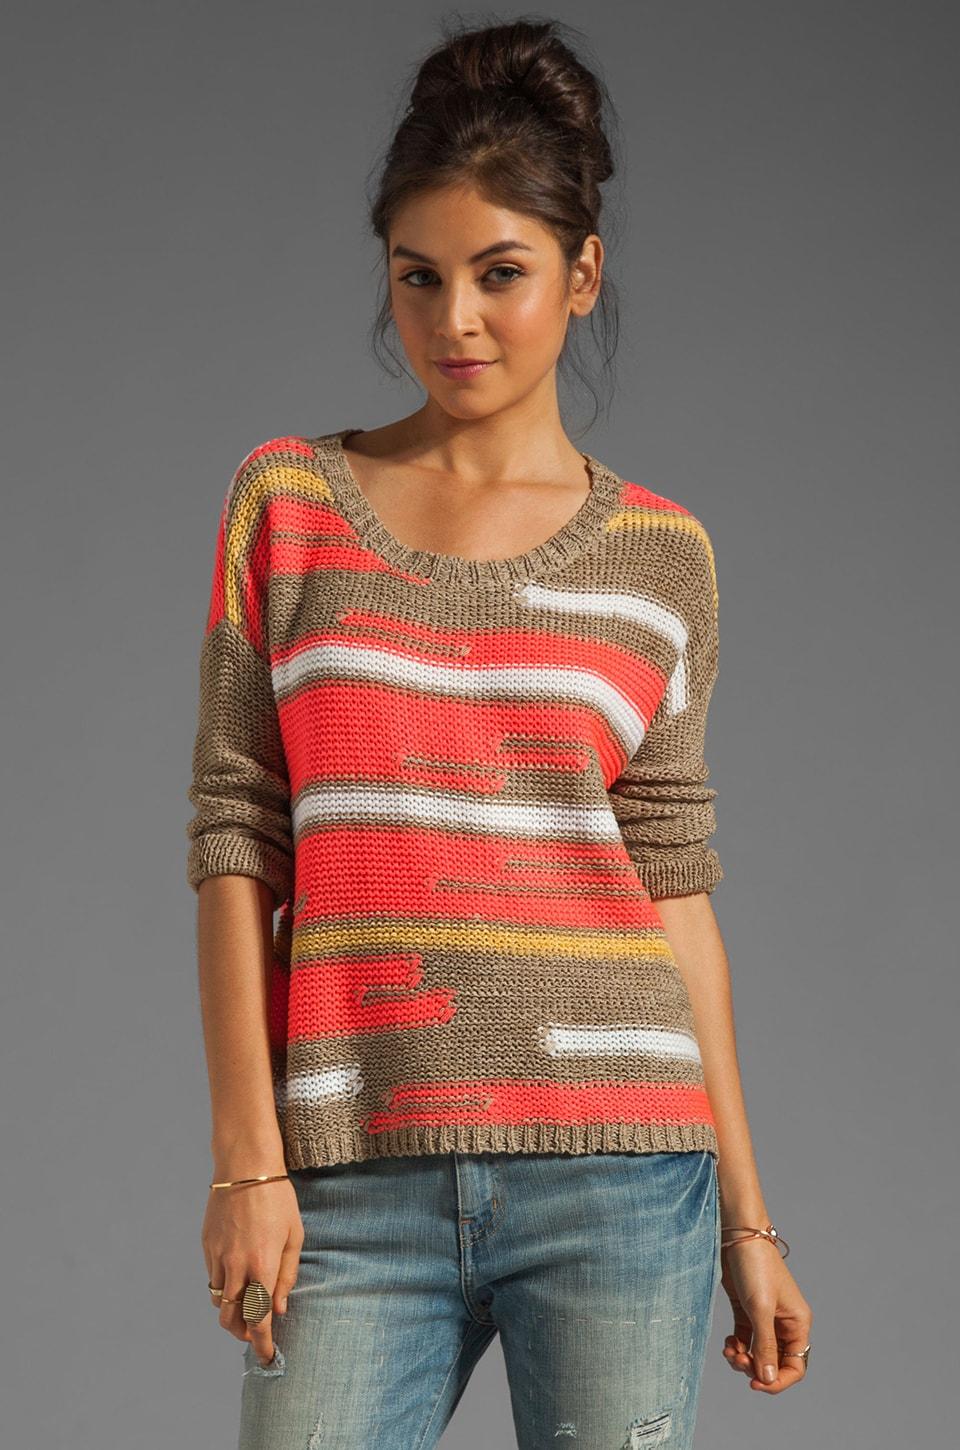 Central Park West Bal Harbour Mix Yarn Stripe Pullover in Coral